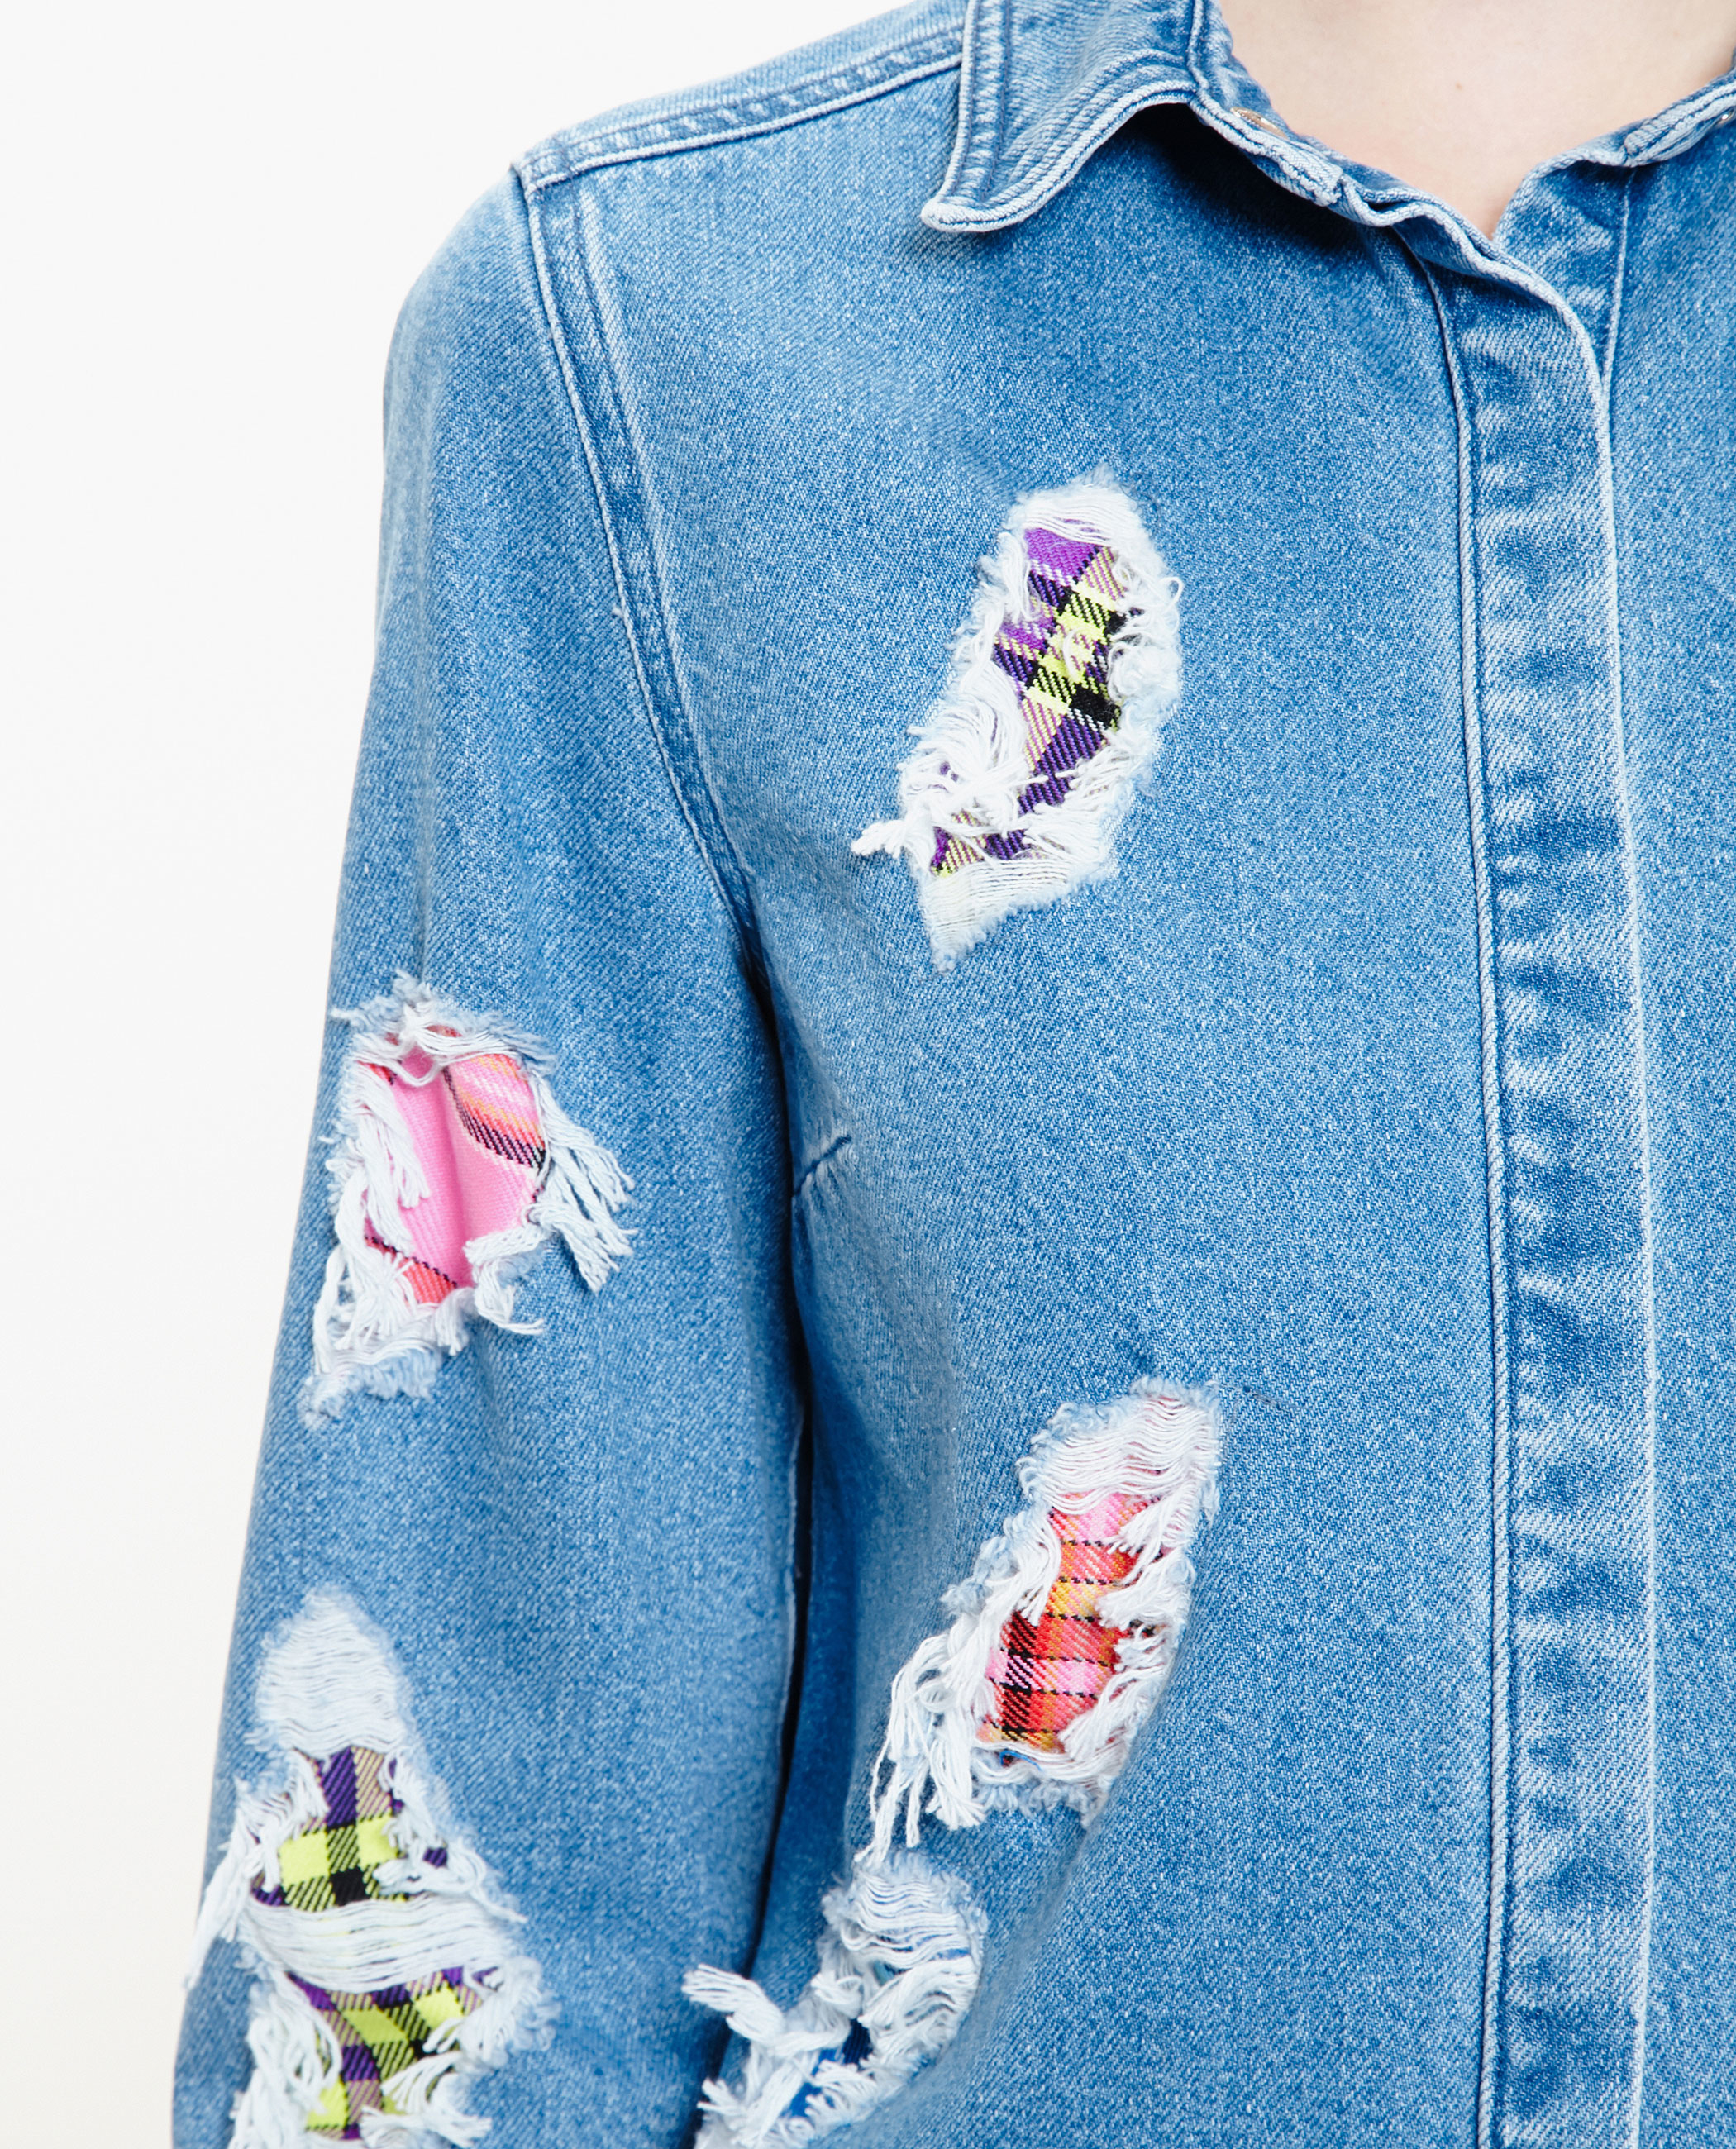 House Of Holland Distressed Denim Shirt In Blue Lyst